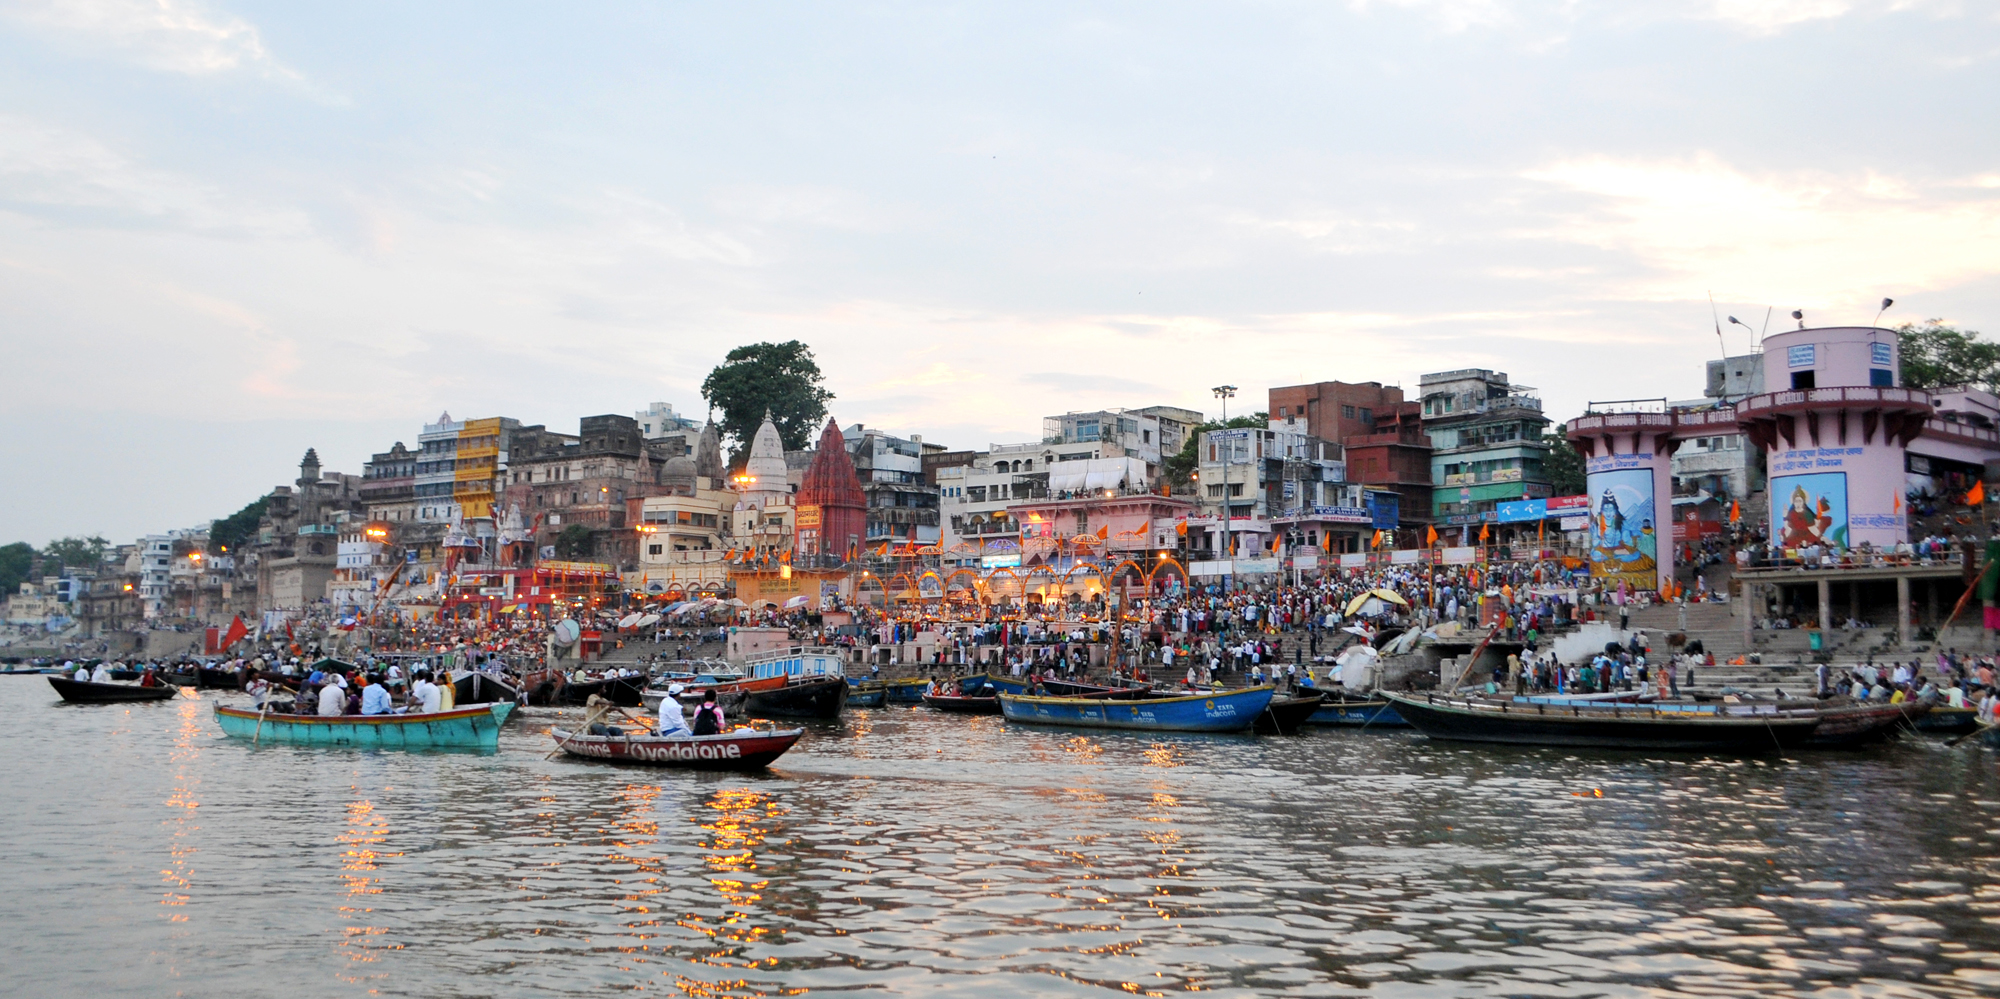 <strong>Ghat of Varanasi, Varanasi</strong> - The crowd grows during sunset at one of the more than 80 ghats on the river Ganges here. The Dashashwamedh Ghat is the main and probably oldest ghat located on the Ganges here.